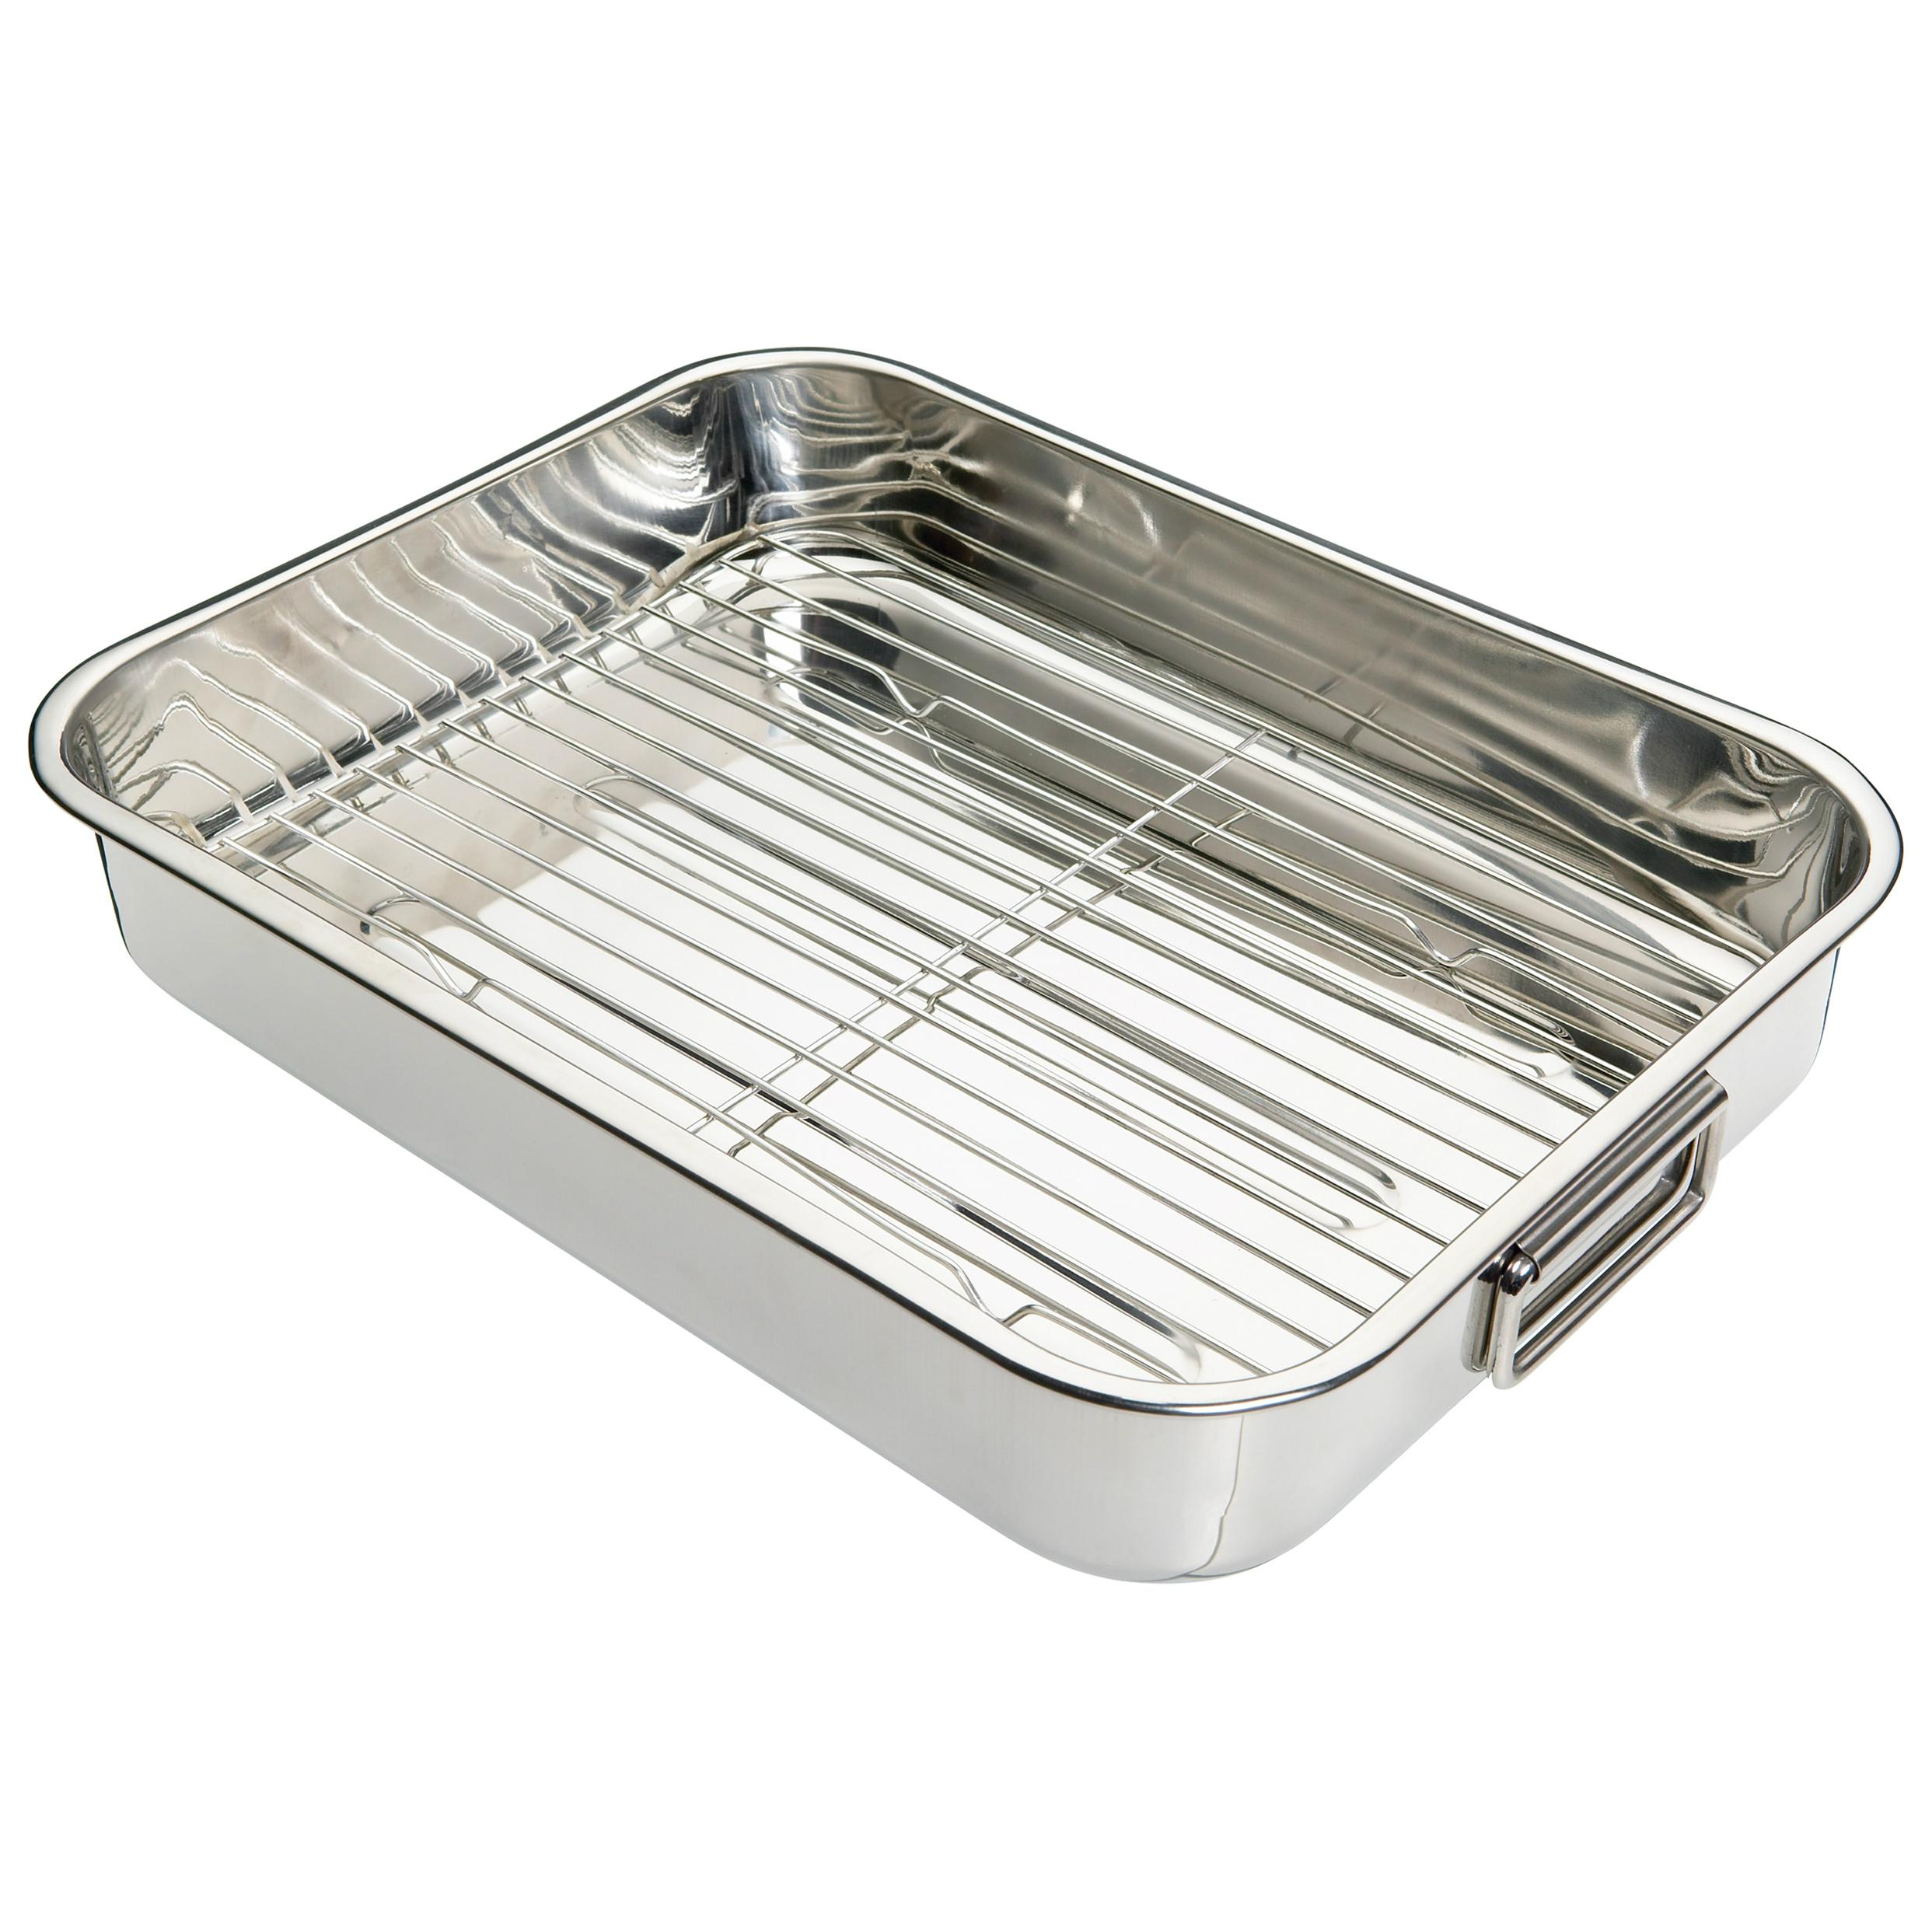 c roasting cookware qvc clad com n steel all food ply pan set rack piece contemporary calphalon stainless with tri kitchen